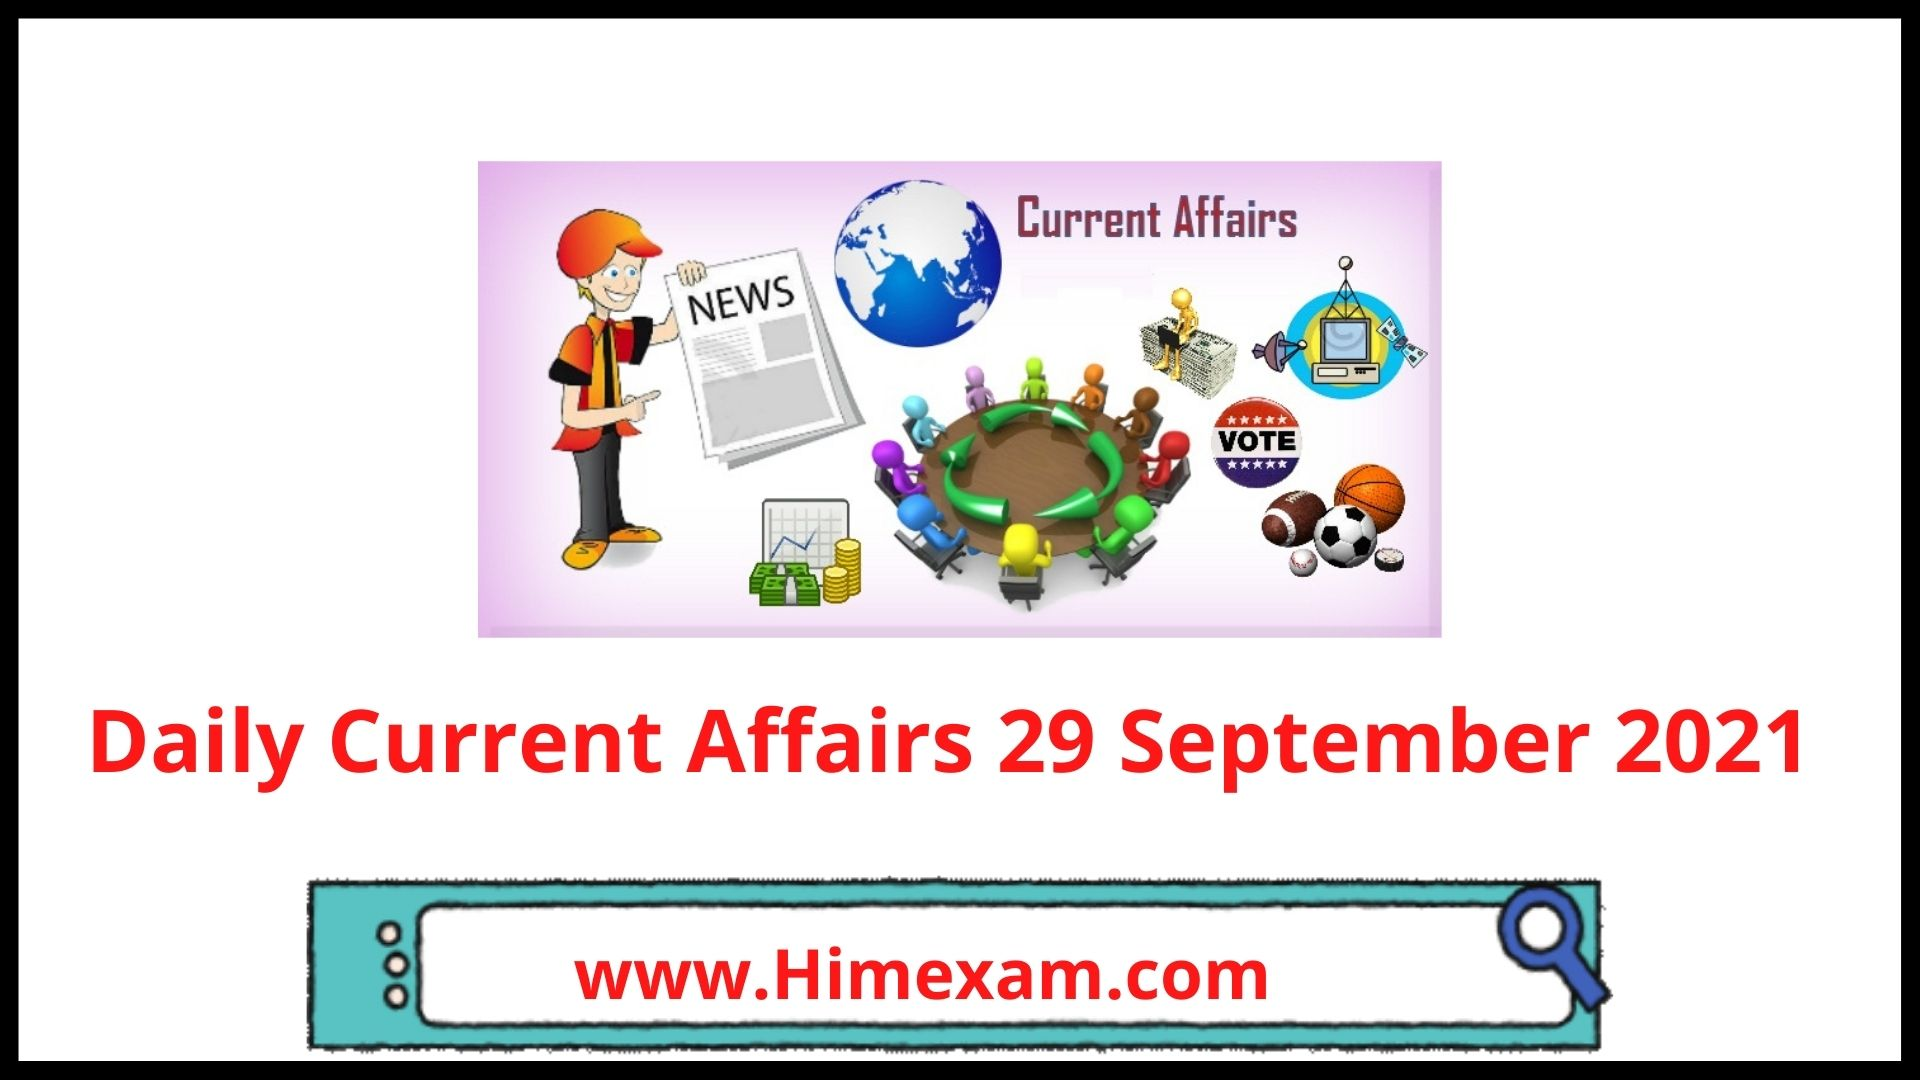 Daily Current Affairs 29 September 2021